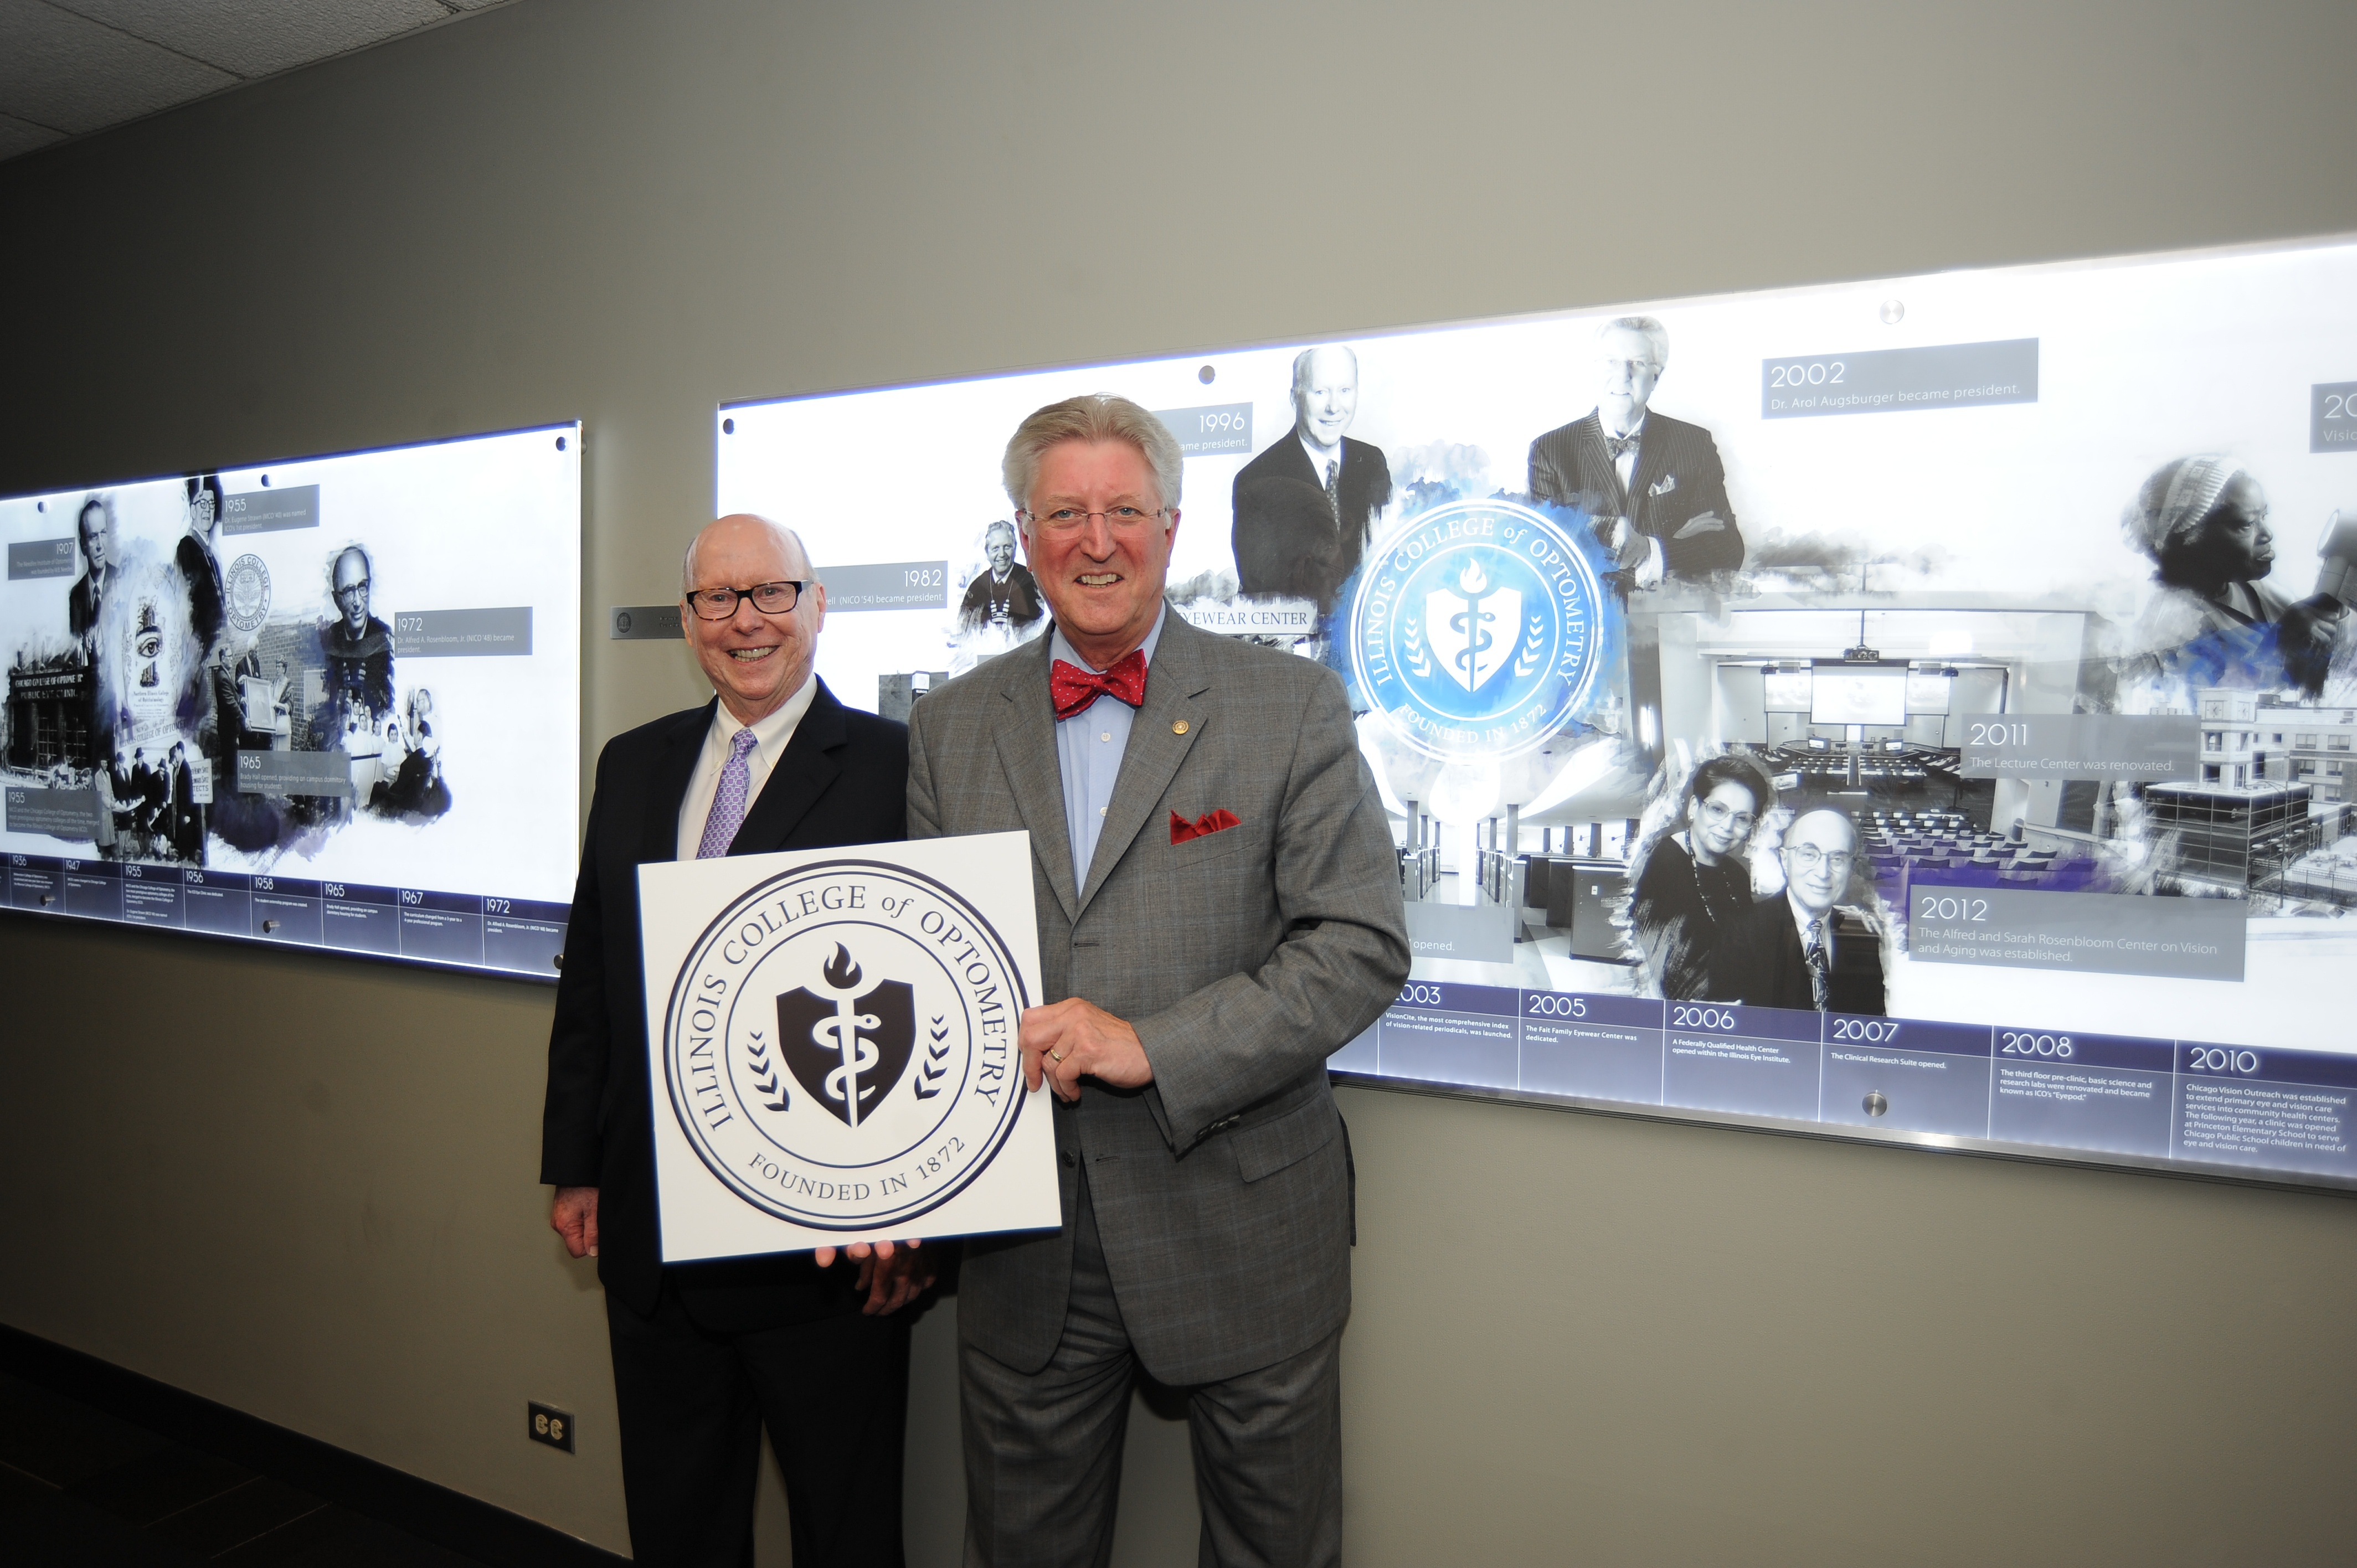 President of Illinois College of Optometry (ICO) Arol Augsburger (in bow tie) stands with his ICO President predecessor Dr. Charles Mullen in front of a mural depicting key events in the 144 year history of ICO.